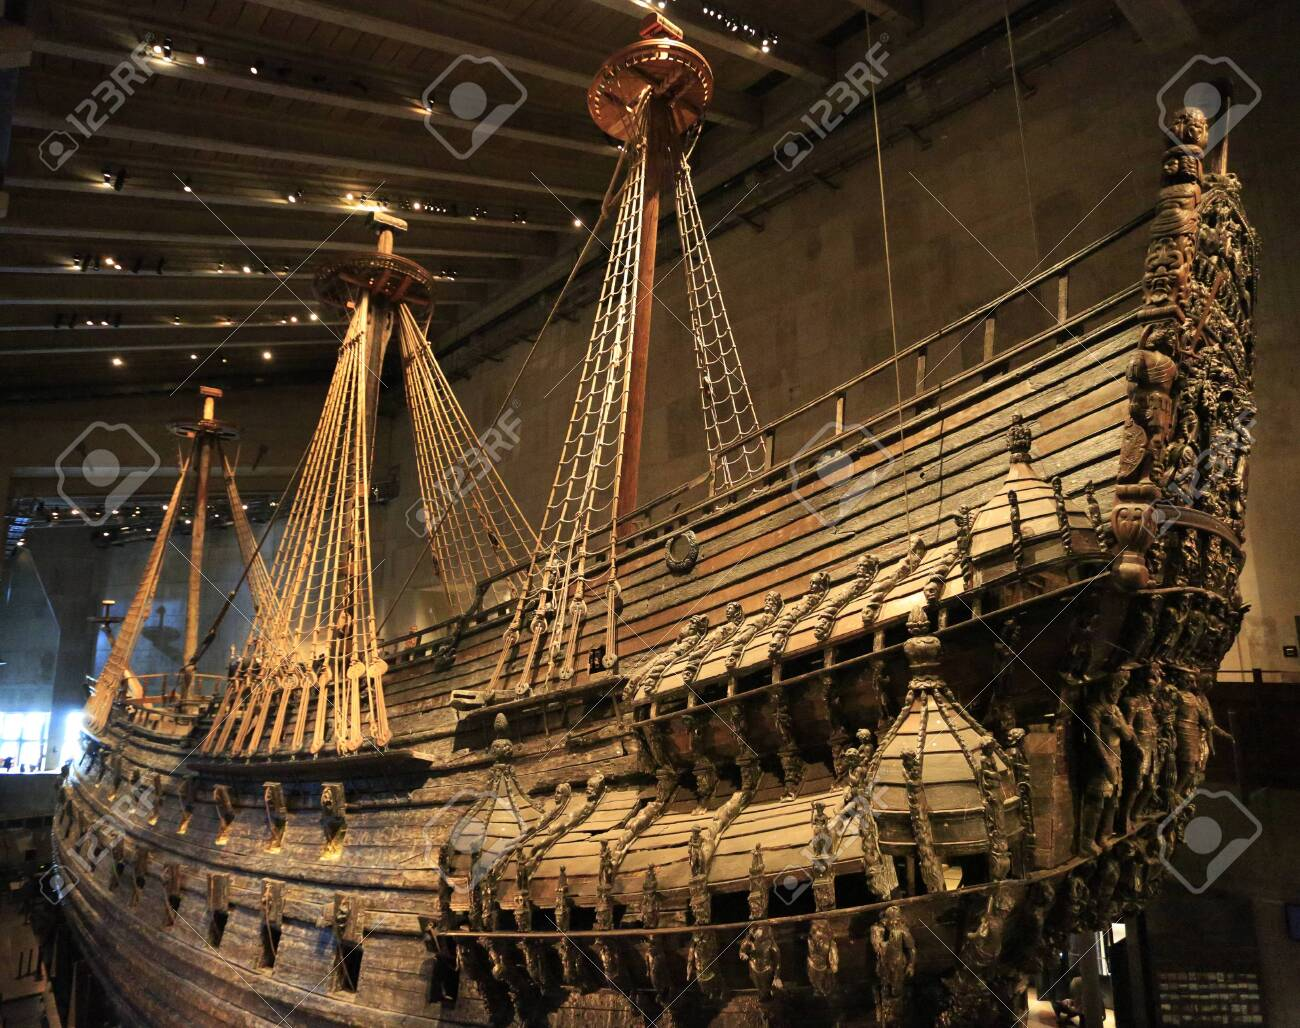 The Vasa Museum in Stockholm, Sweden displays the Vasa, a fully recovered 17th century ship - 131403608